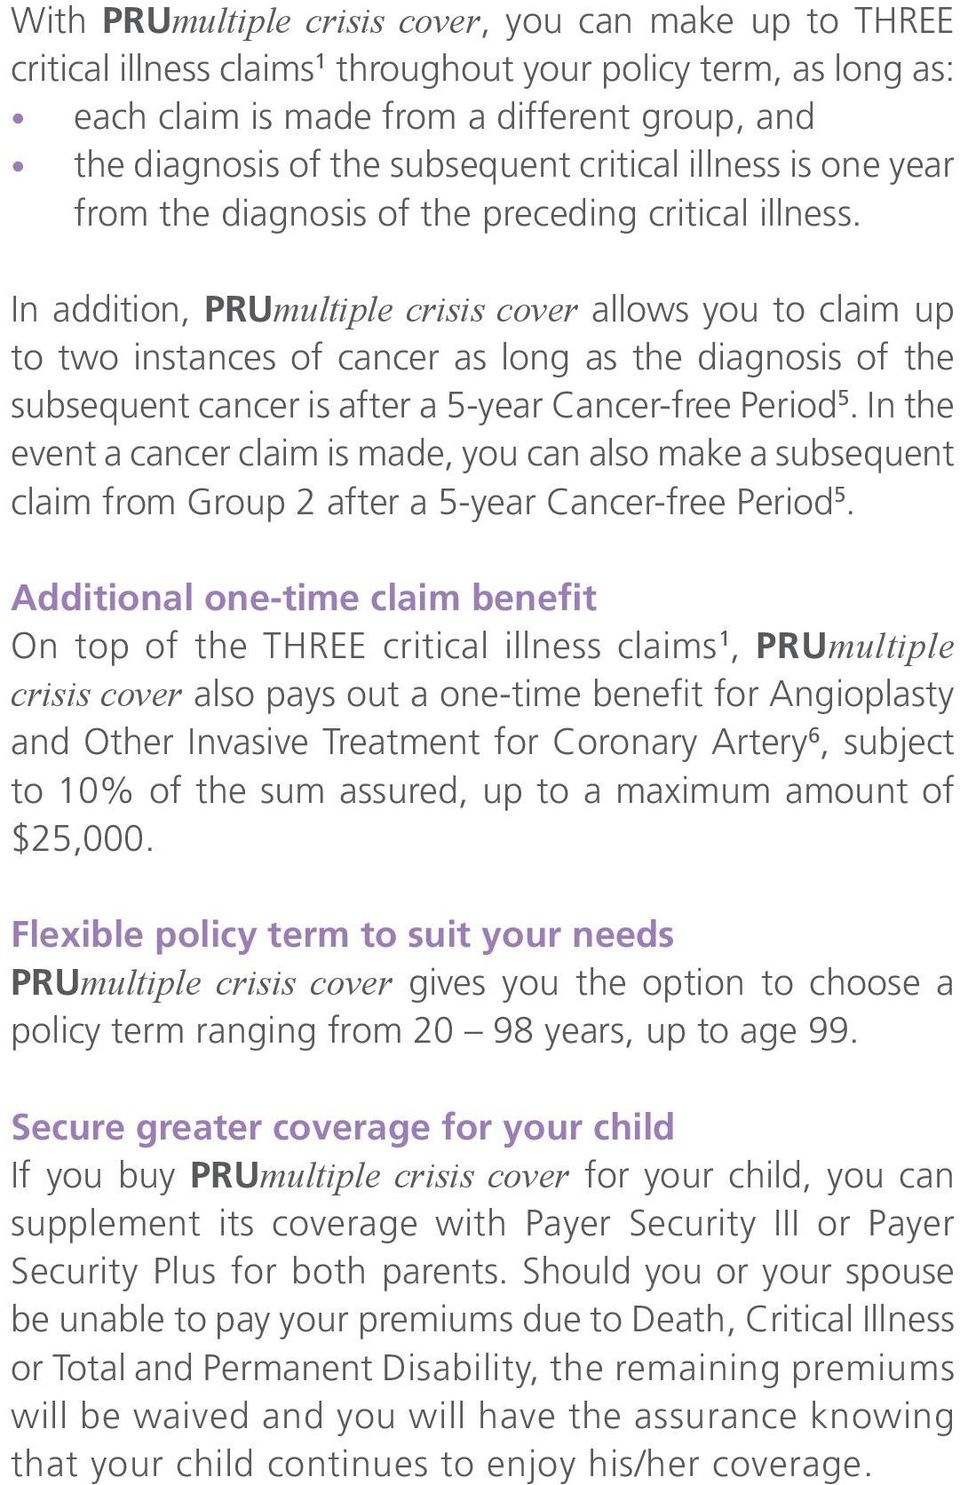 In addition, PRUmultiple crisis cover allows you to claim up to two instances of cancer as long as the diagnosis of the subsequent cancer is after a 5-year Cancer-free Period 5.